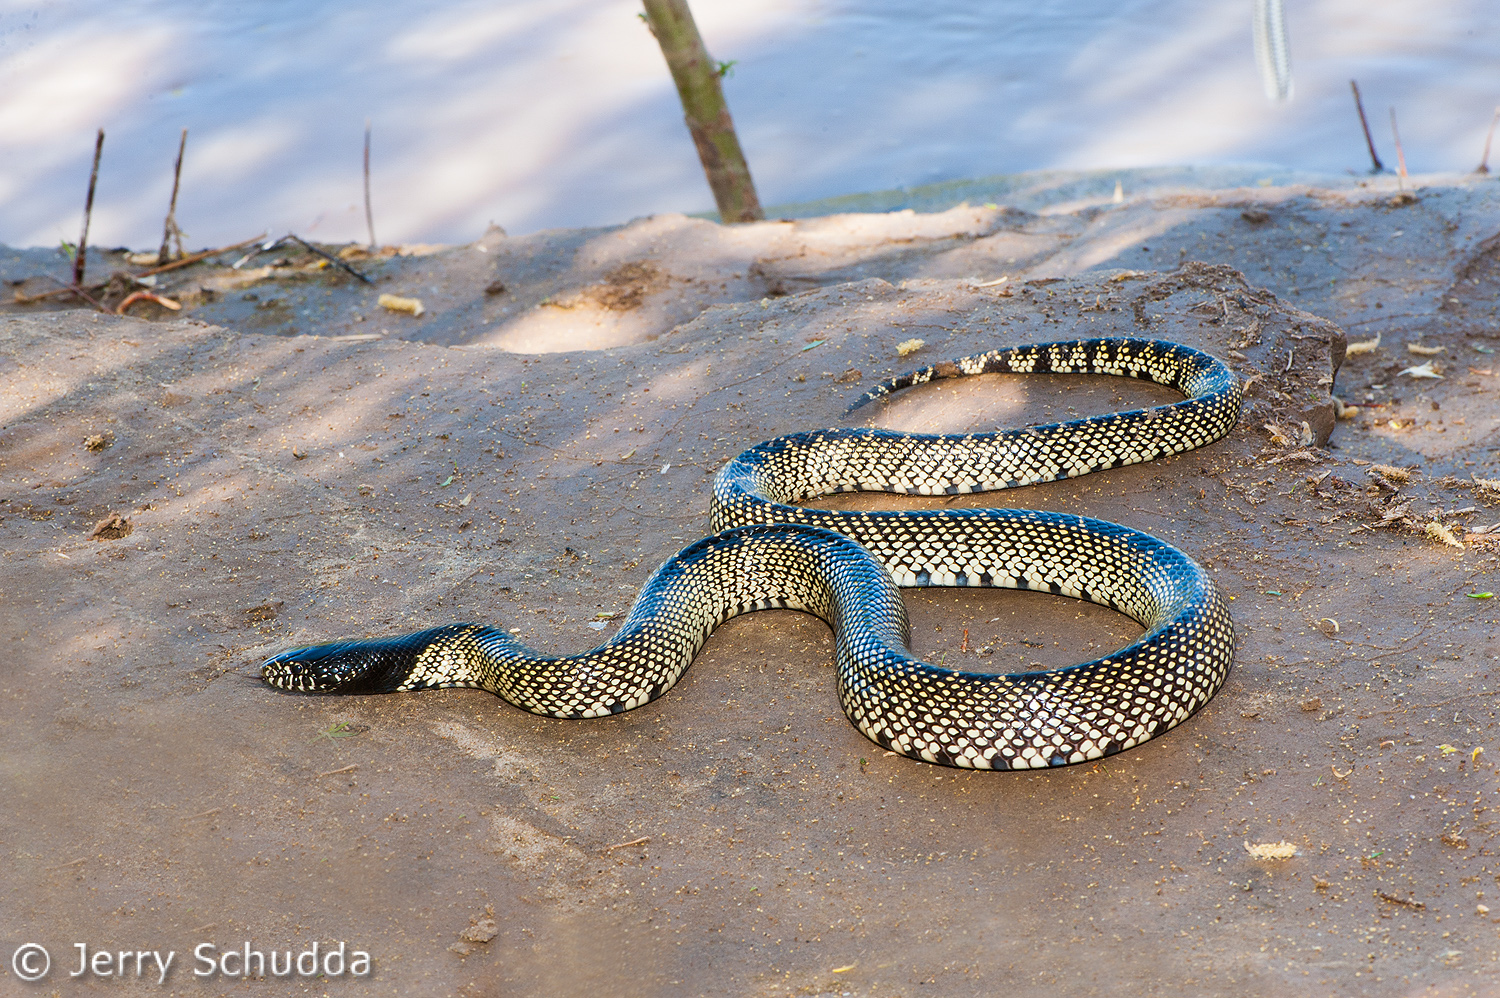 Common Kingsnake 13